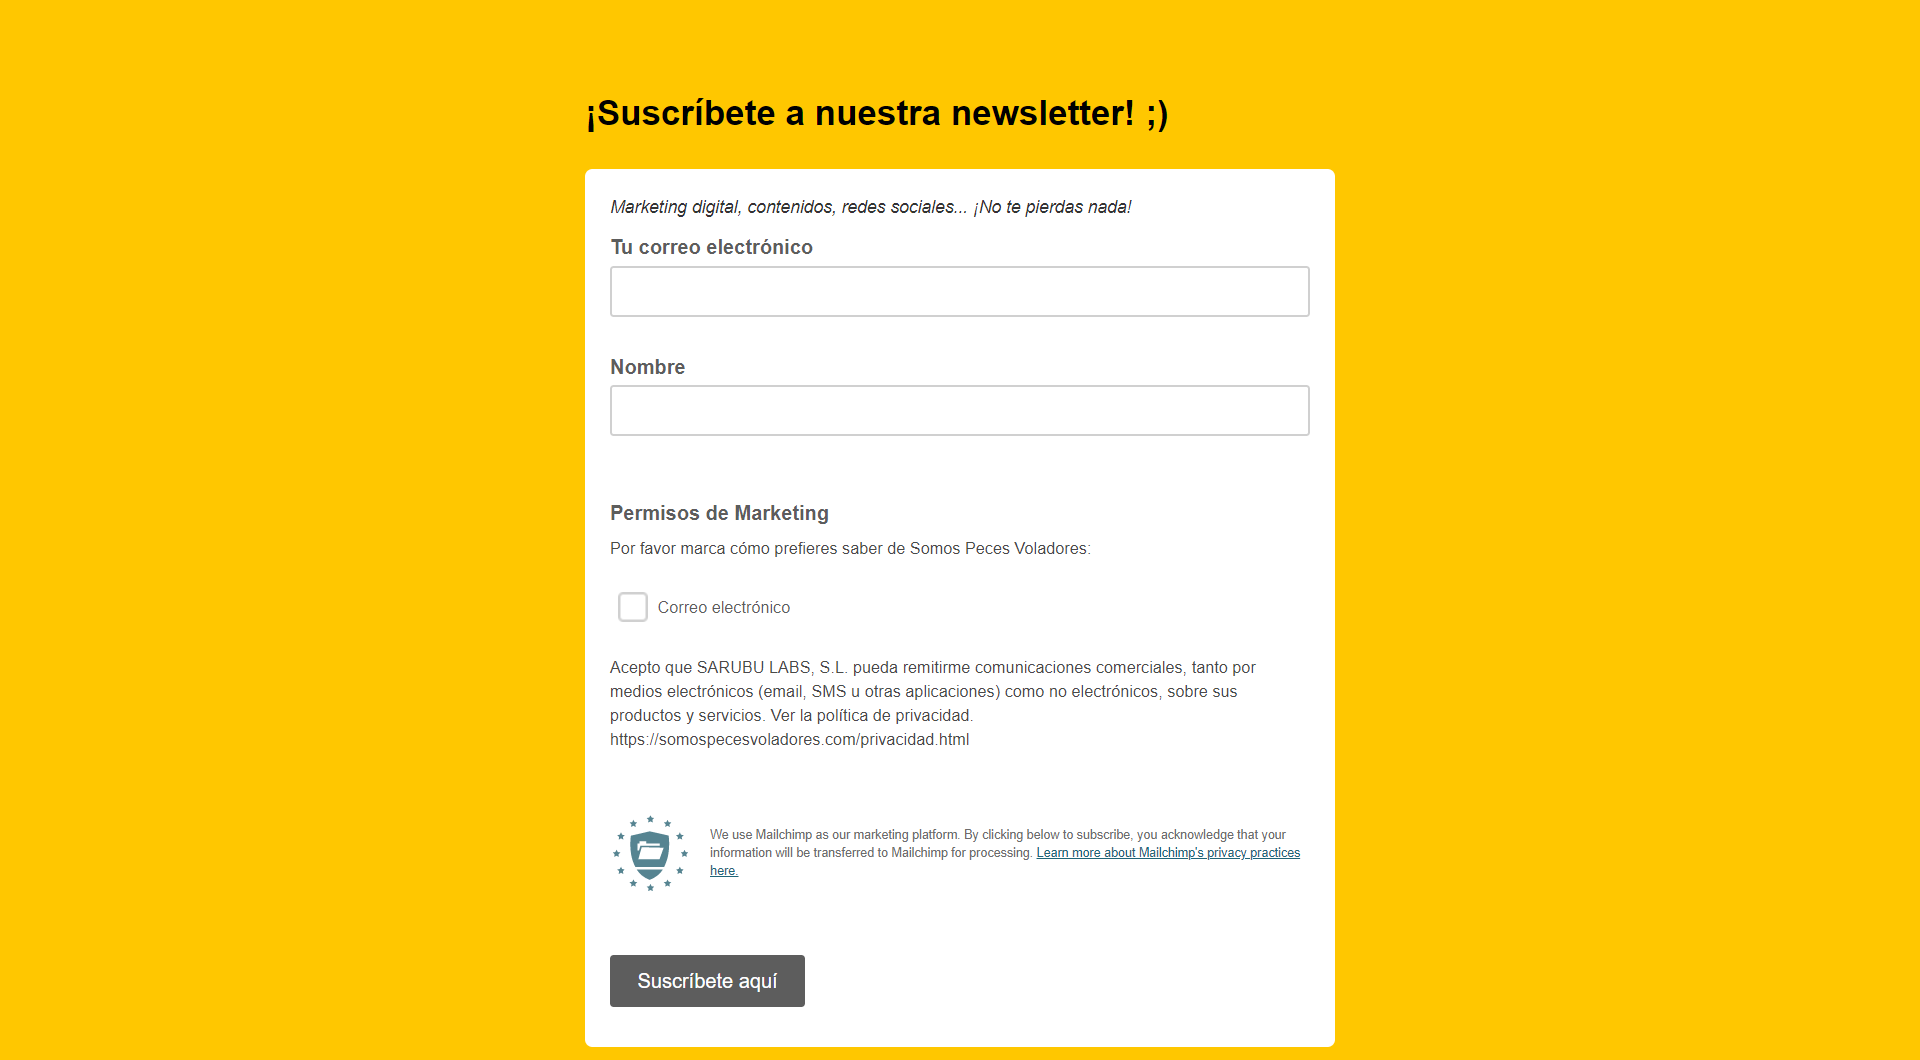 landing page newsletter somos peces voladores